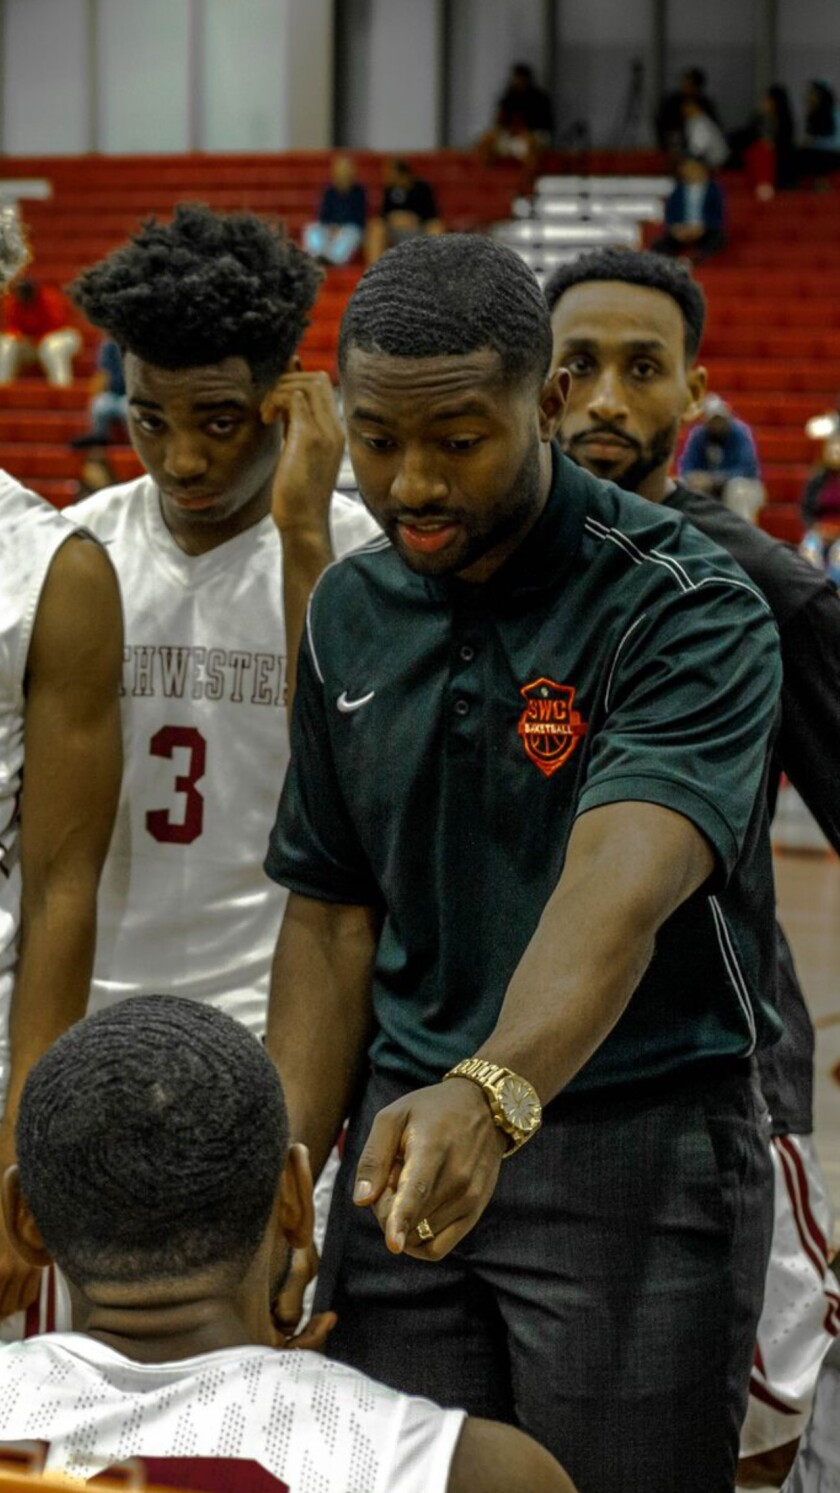 New Steele Canyon coach Aaron Douglas includes Southwestern College among his previous stops as an assistant coach.